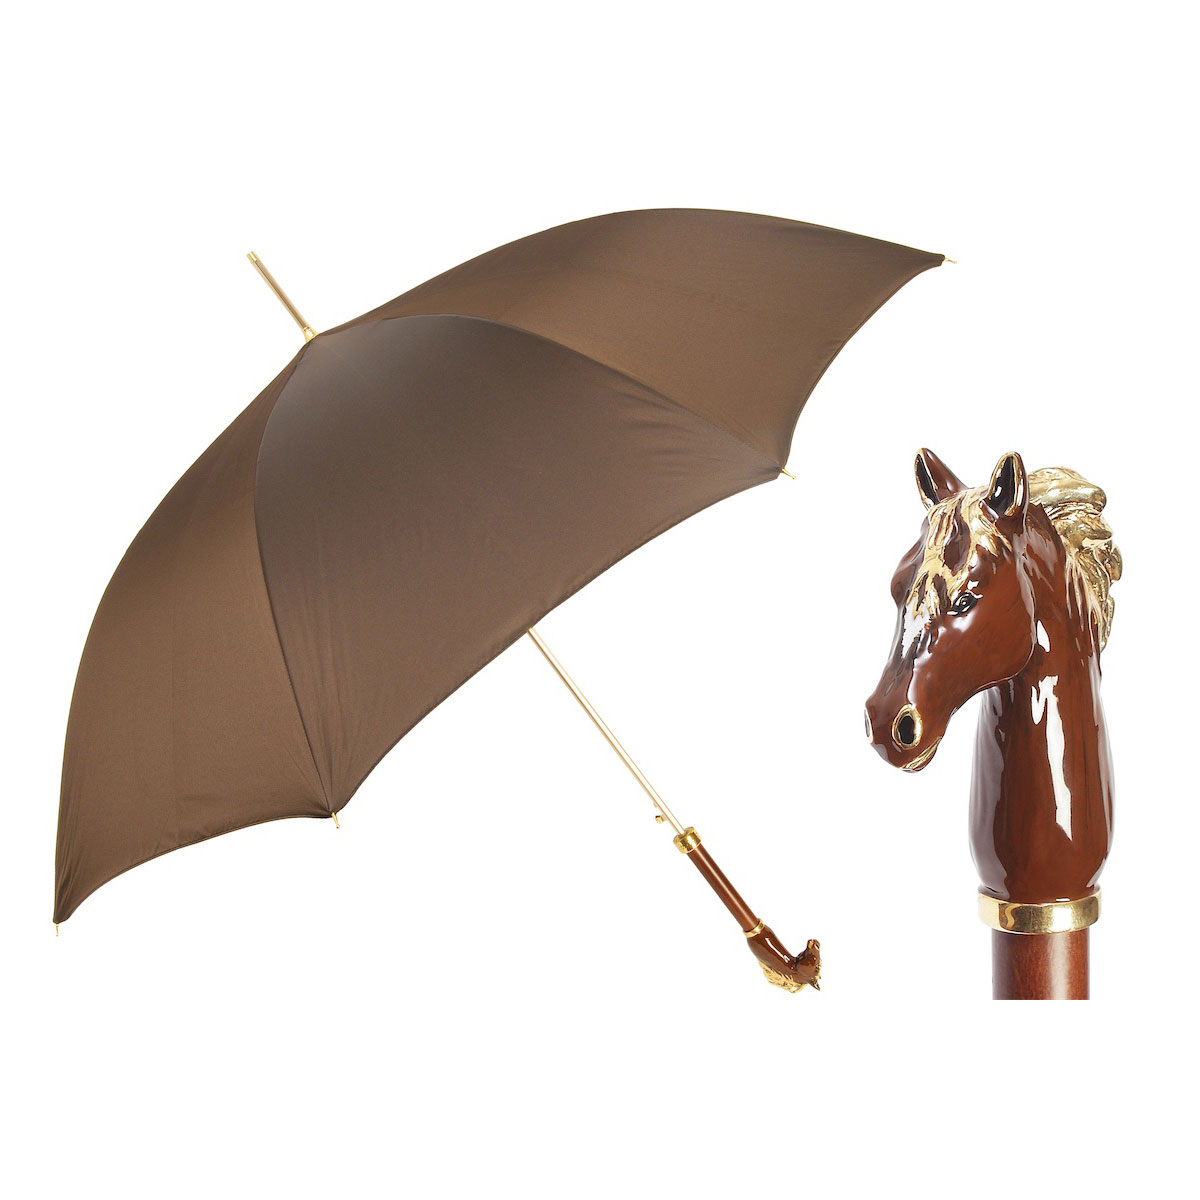 Pasotti Ombrelli Luxurious Brown Horse Luxury Women's Umbrella